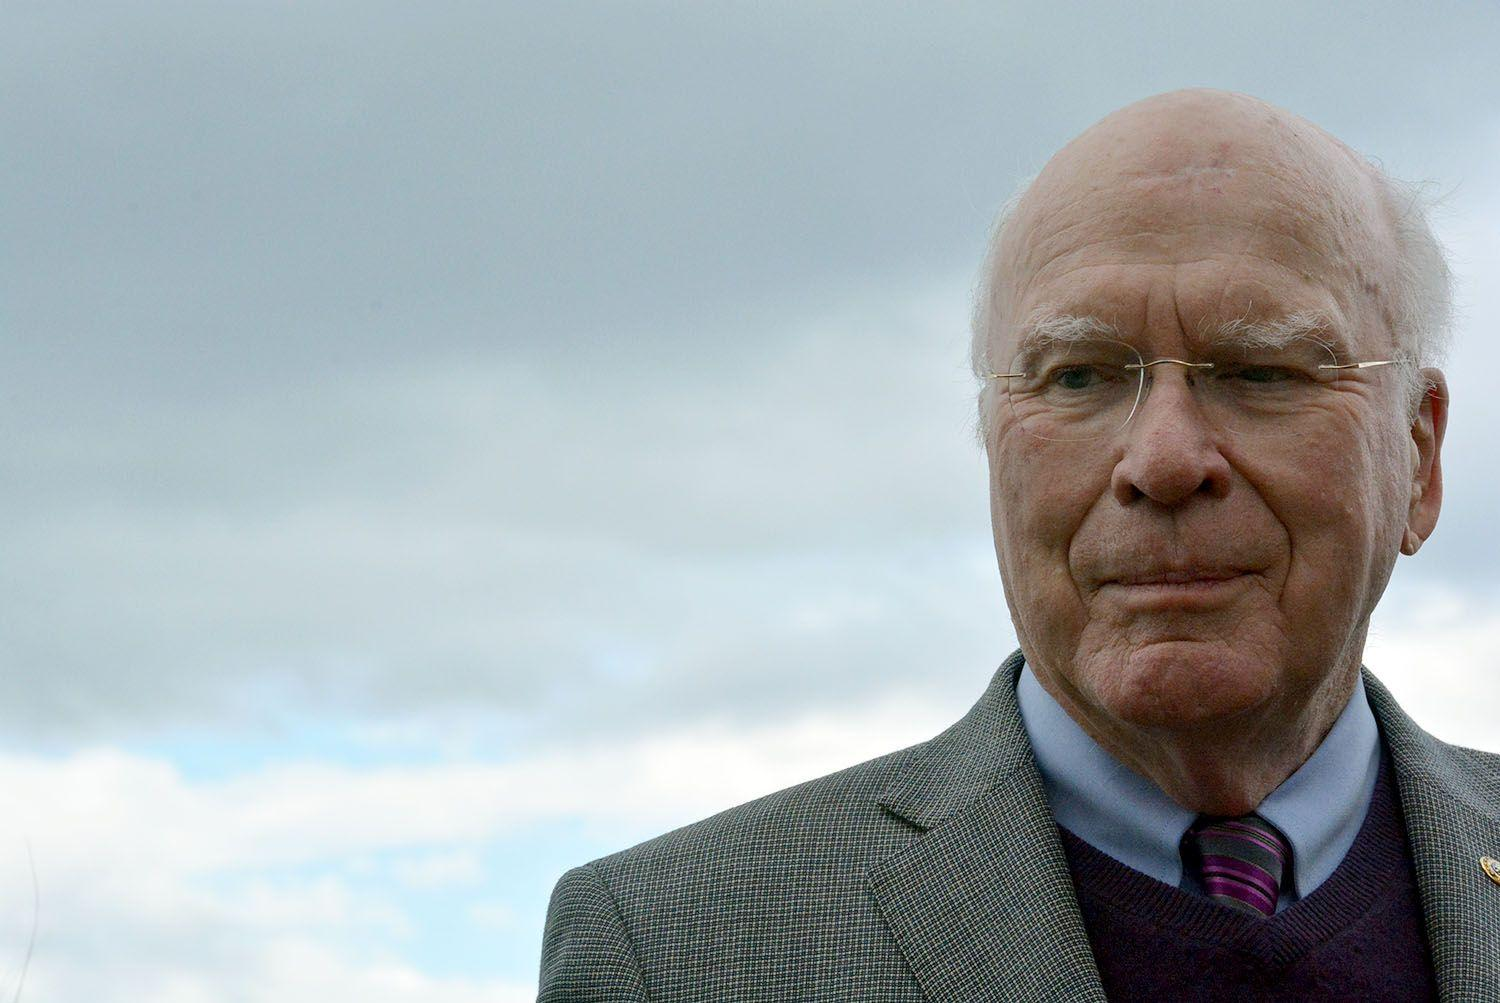 Patrick Leahy standing outside with clouds in the background